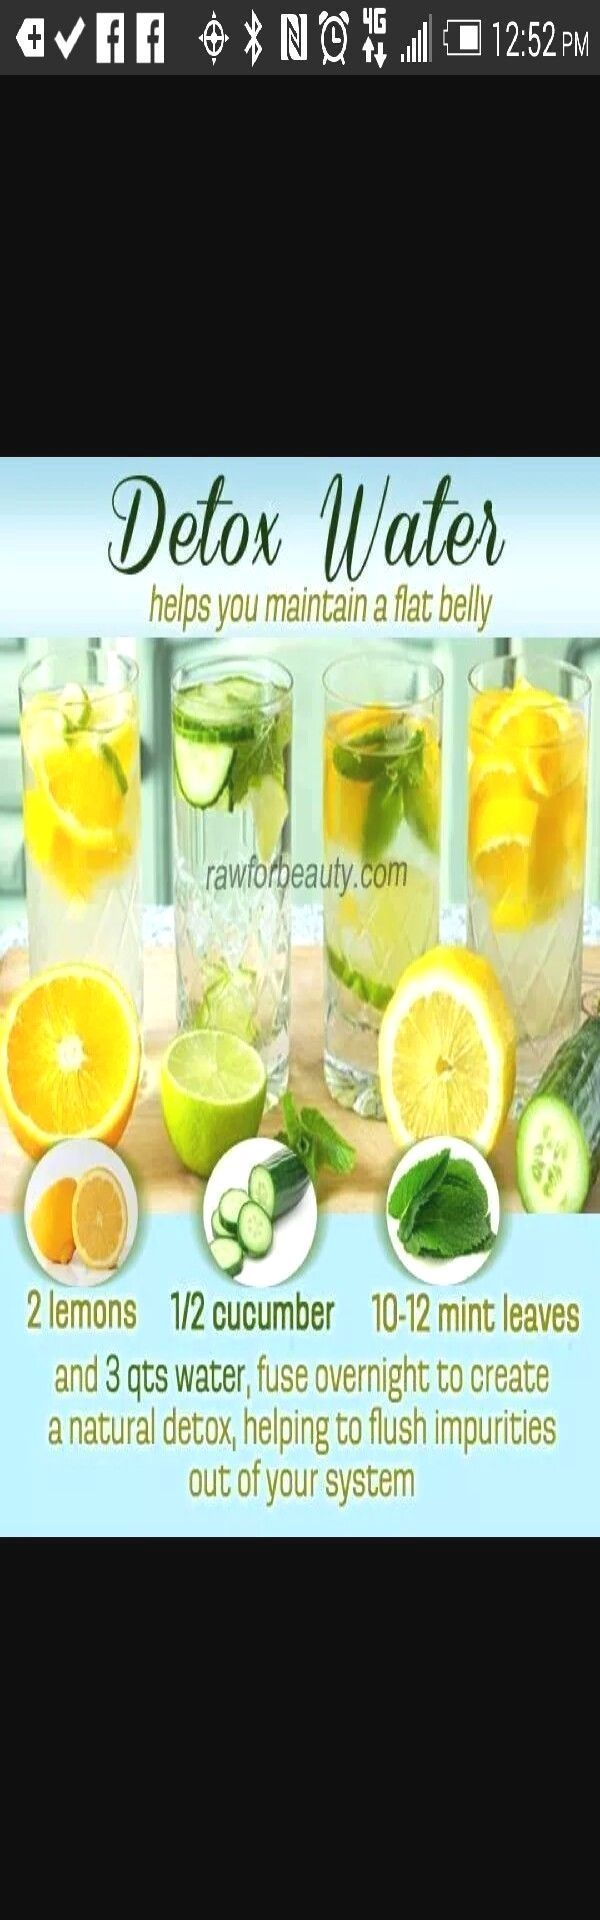 ????detox water recipe helps maintain a flat belly???? #Health #Fitness #Trusper...  - Fitness - #Be...